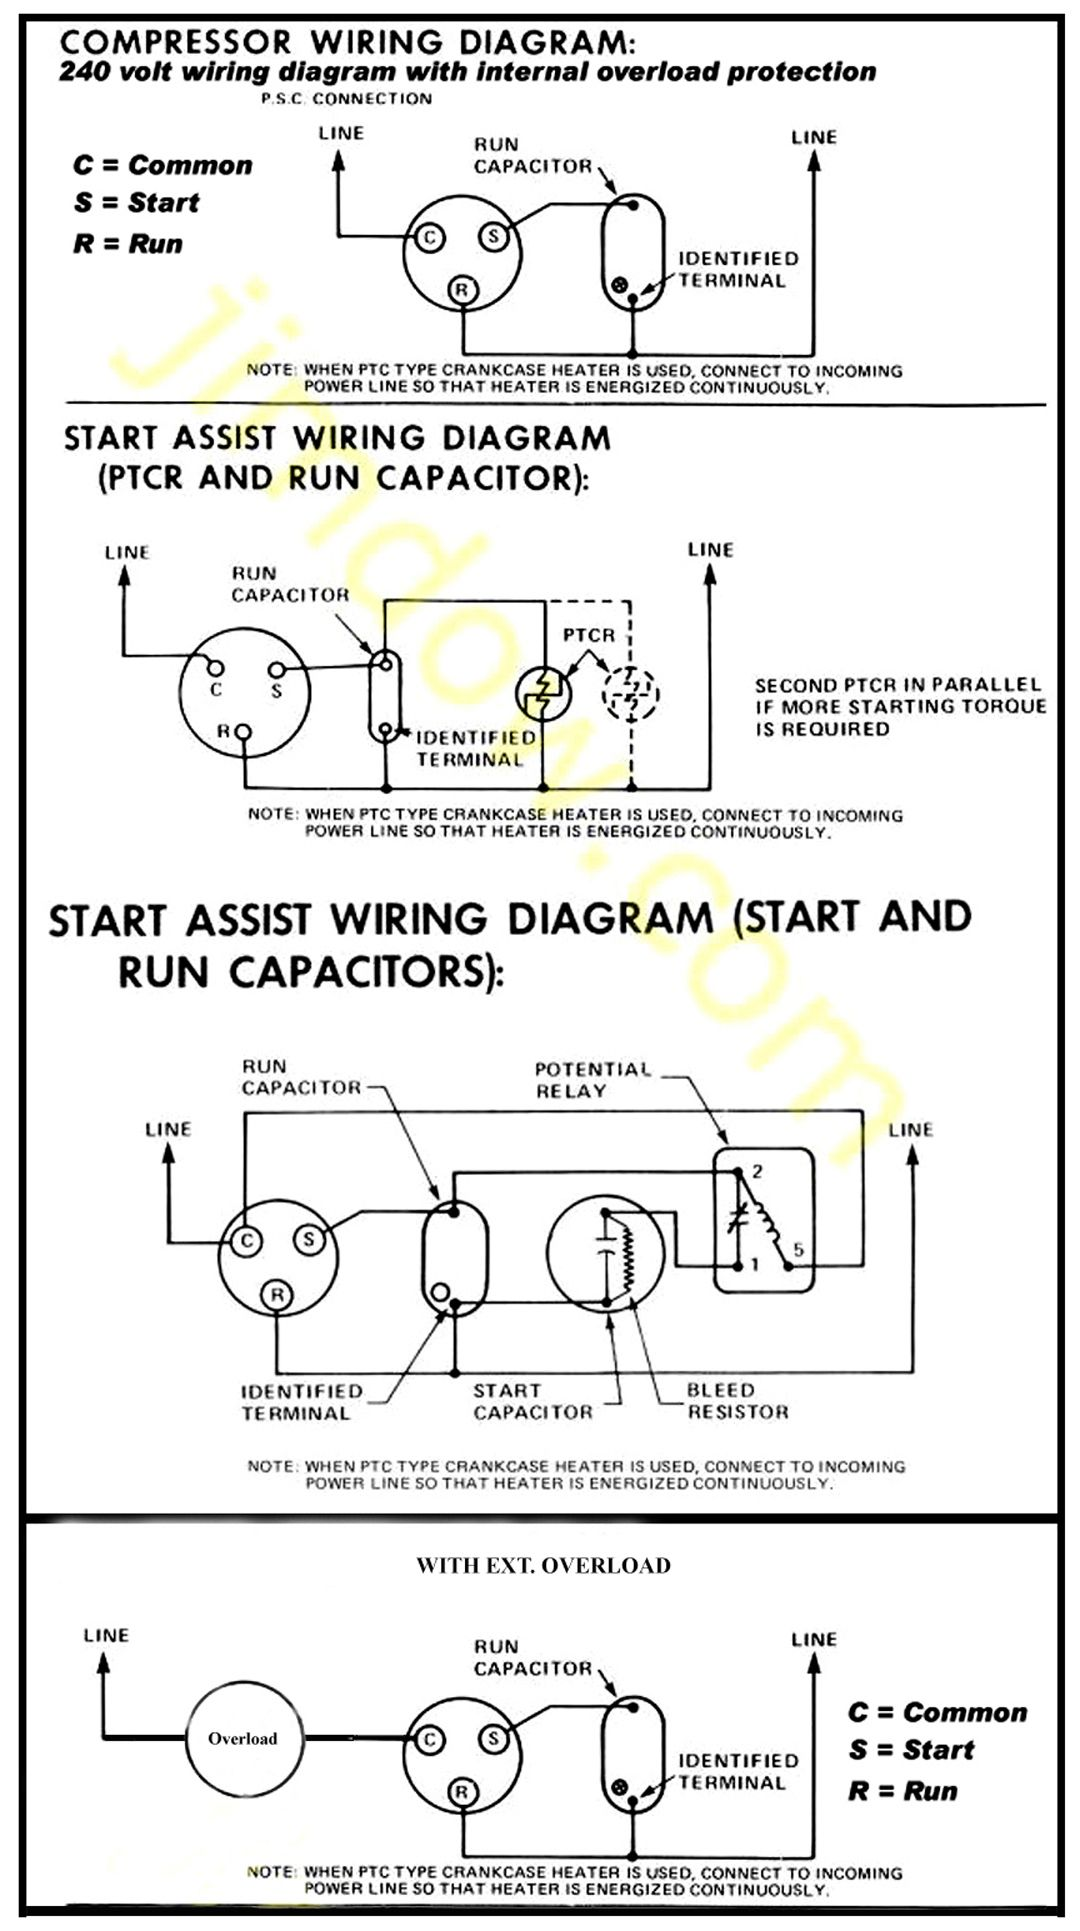 wiring diagram for 220 volt air compressor - bookingritzcarlton.info |  refrigeration and air conditioning, hvac air conditioning, air conditioner  compressor  pinterest